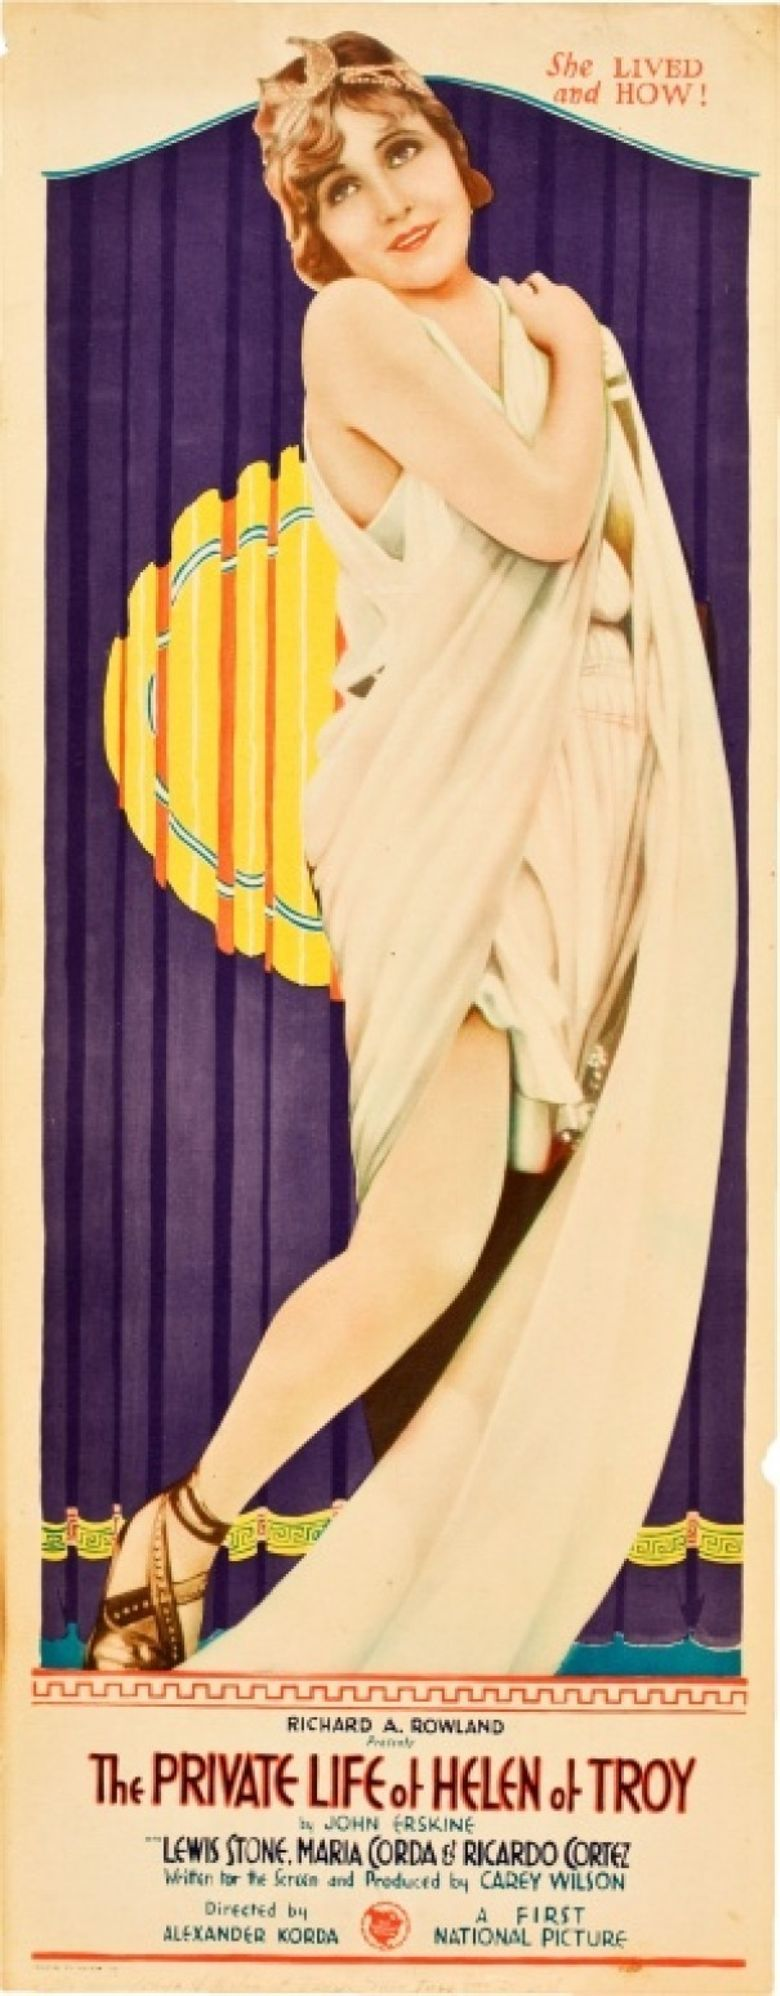 The Private Life of Helen of Troy Poster